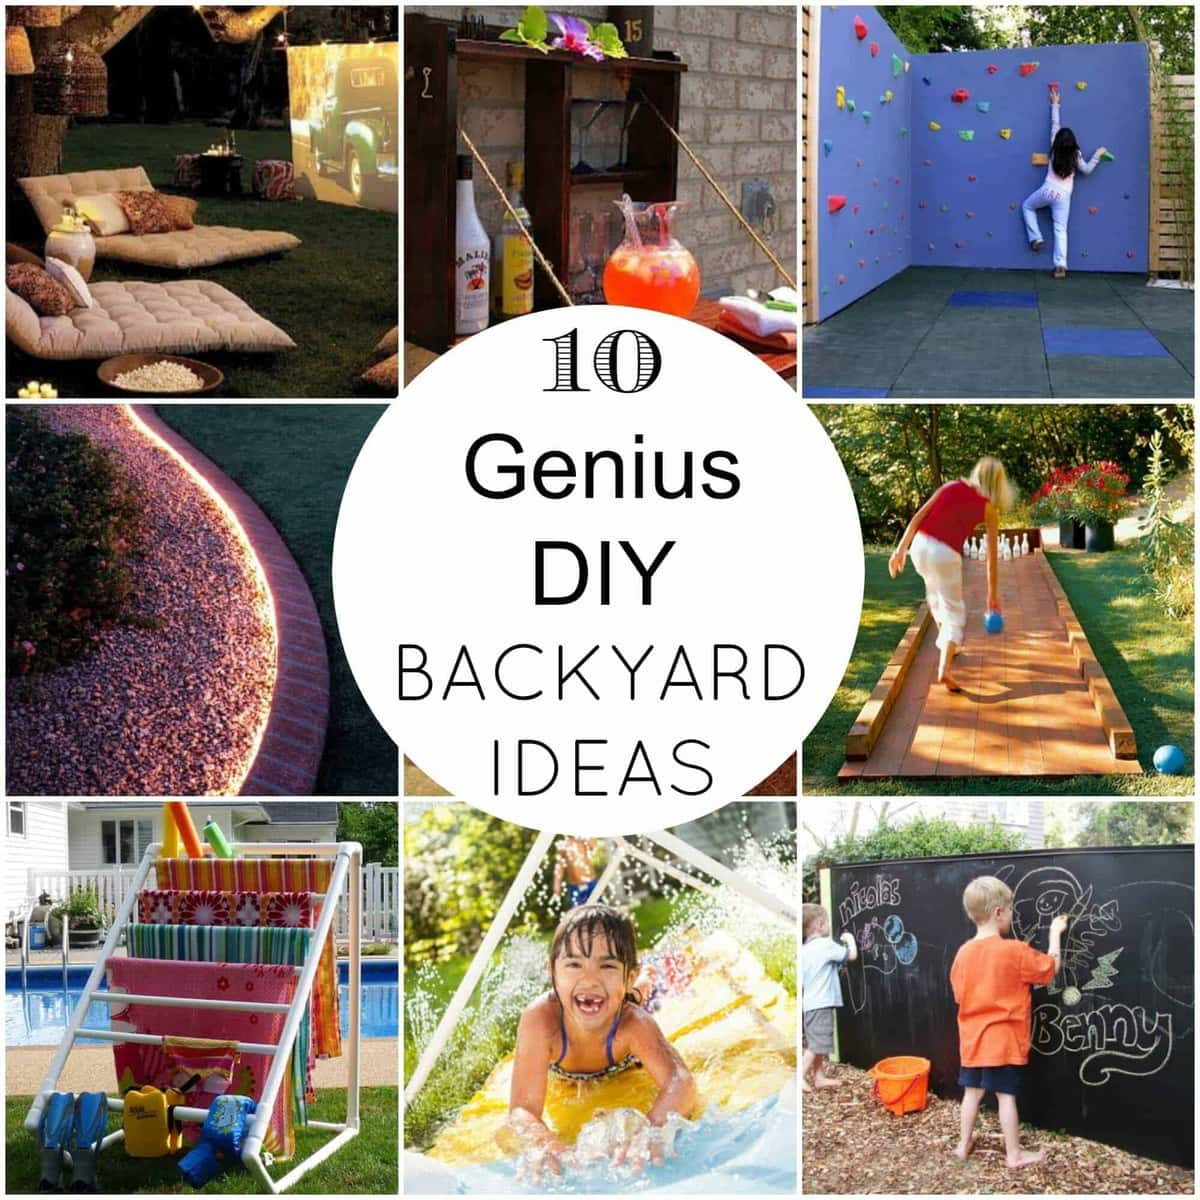 7 Diy Outdoor Lighting Ideas To Illuminate Your Summer: 10 Genius DIY Backyard Ideas